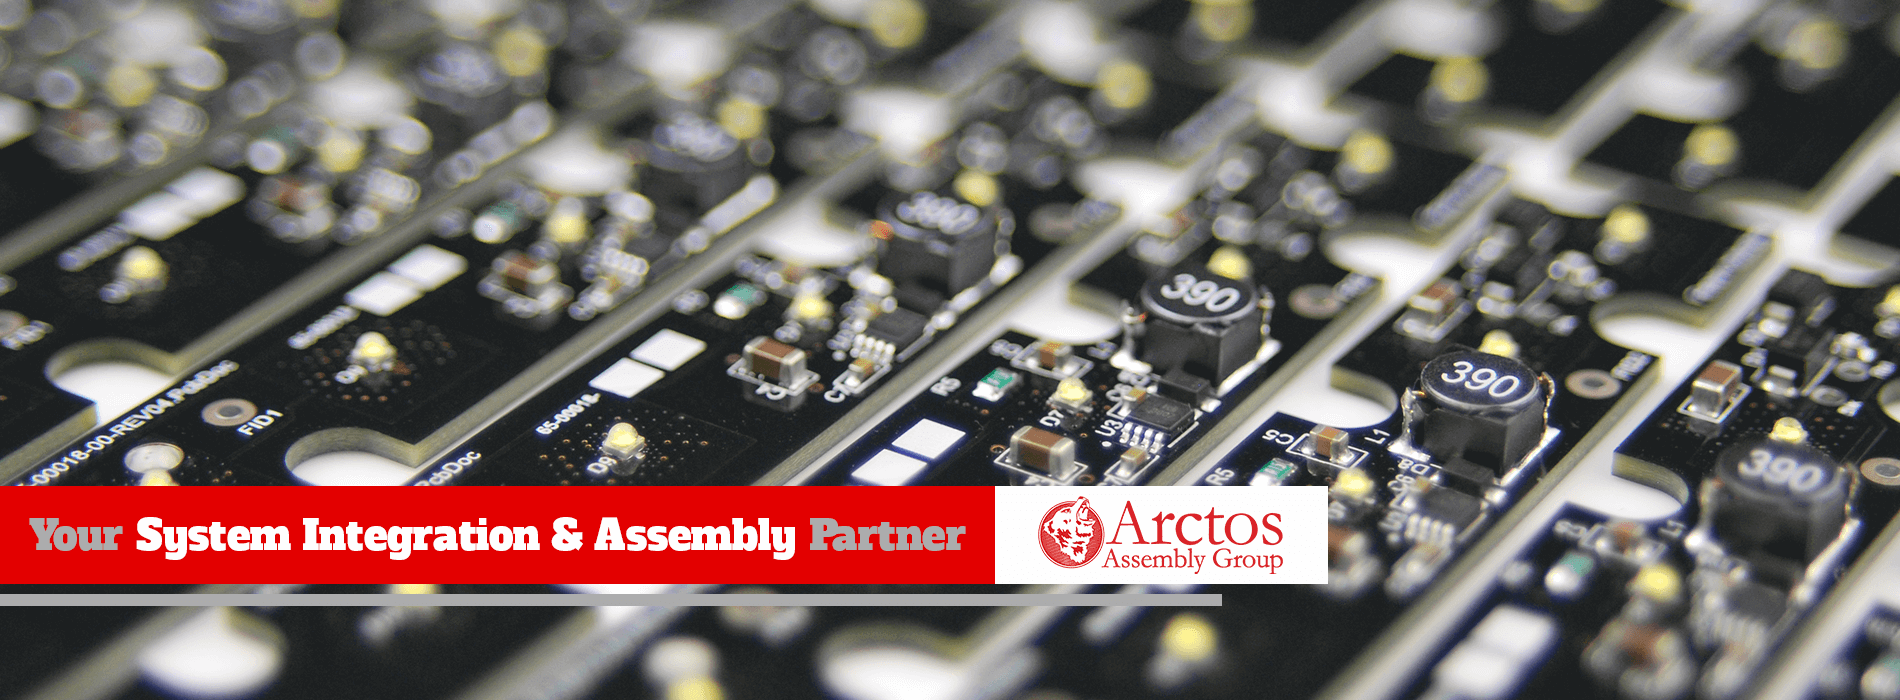 Arctos Assembly Group - Assemblies